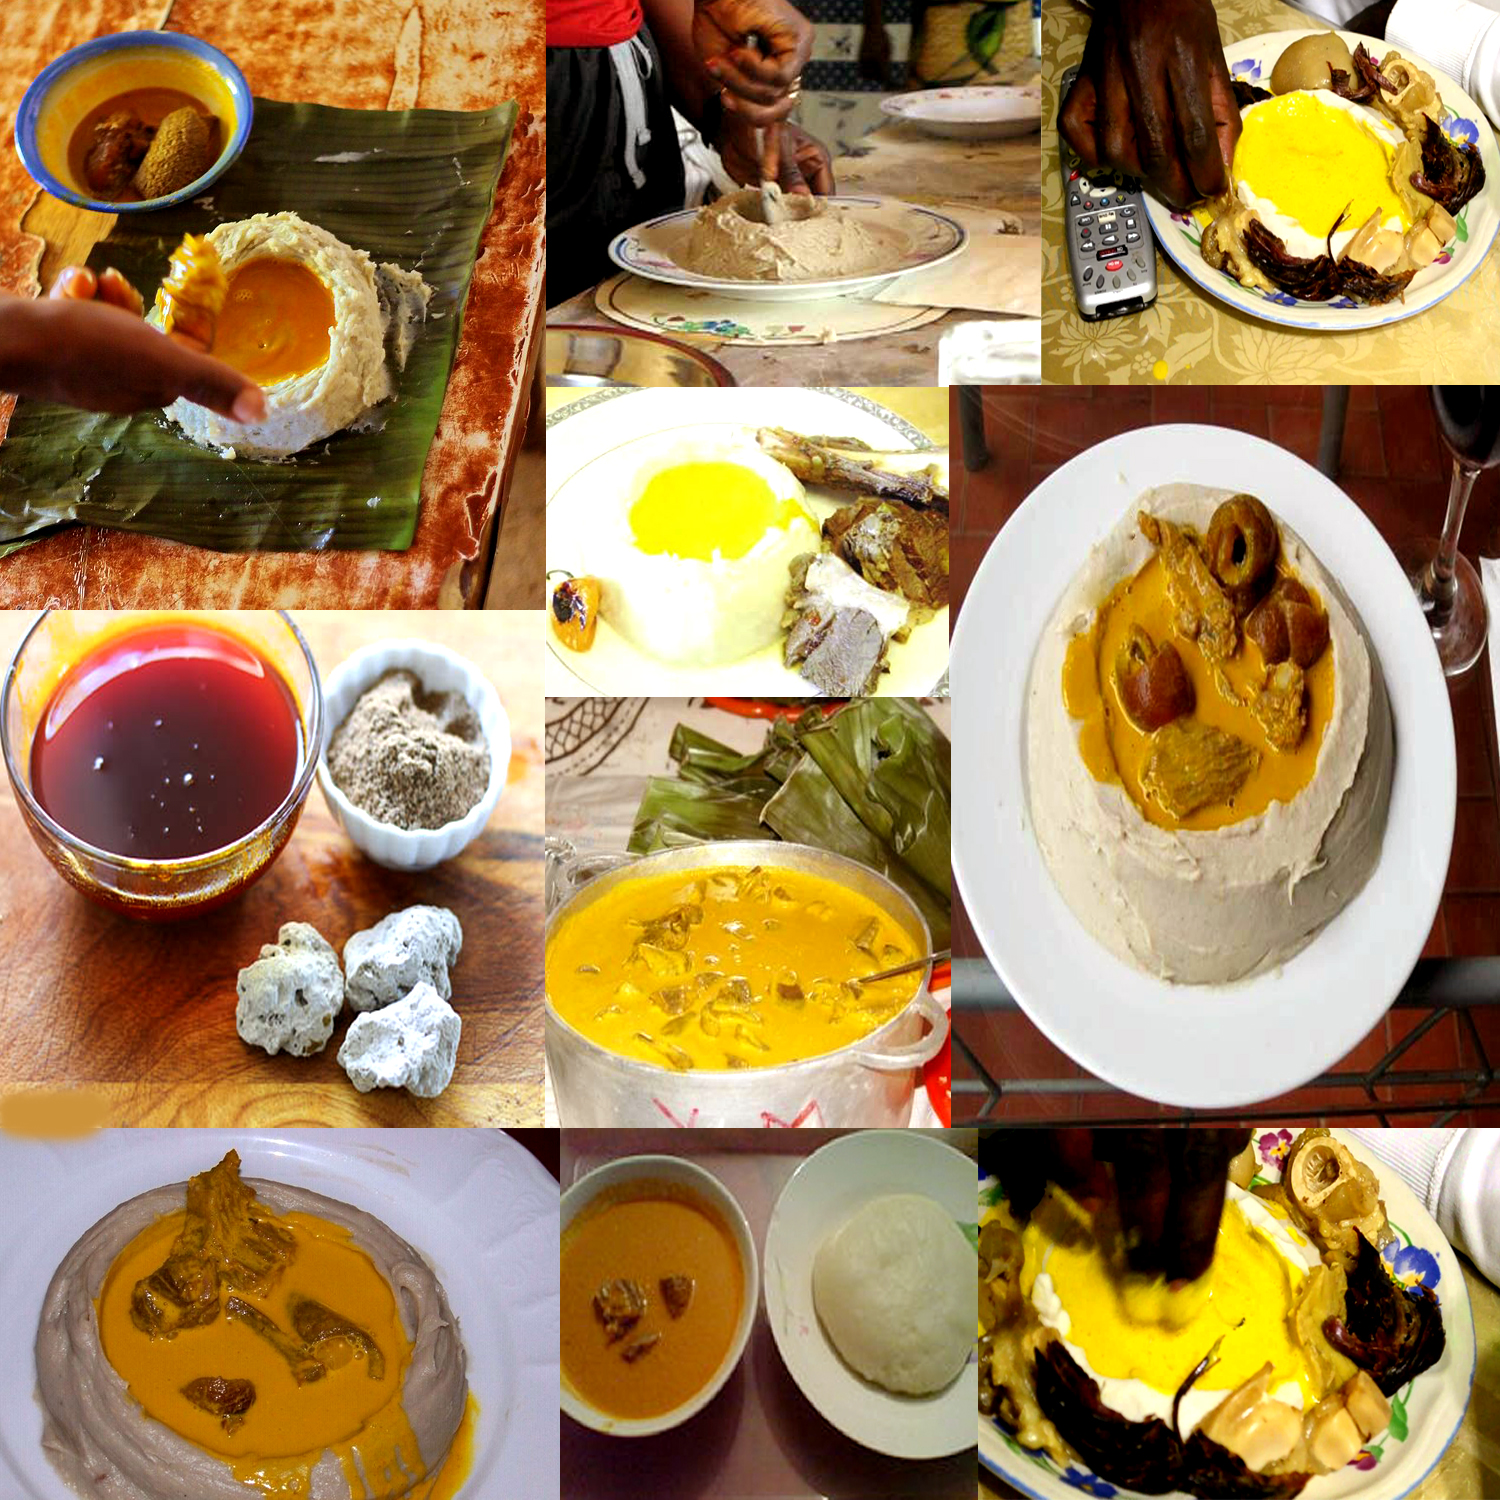 ALL AFRICAN DISHES: CAMEROONIAN RECIPES (ACHU AND YELLOW SOUP